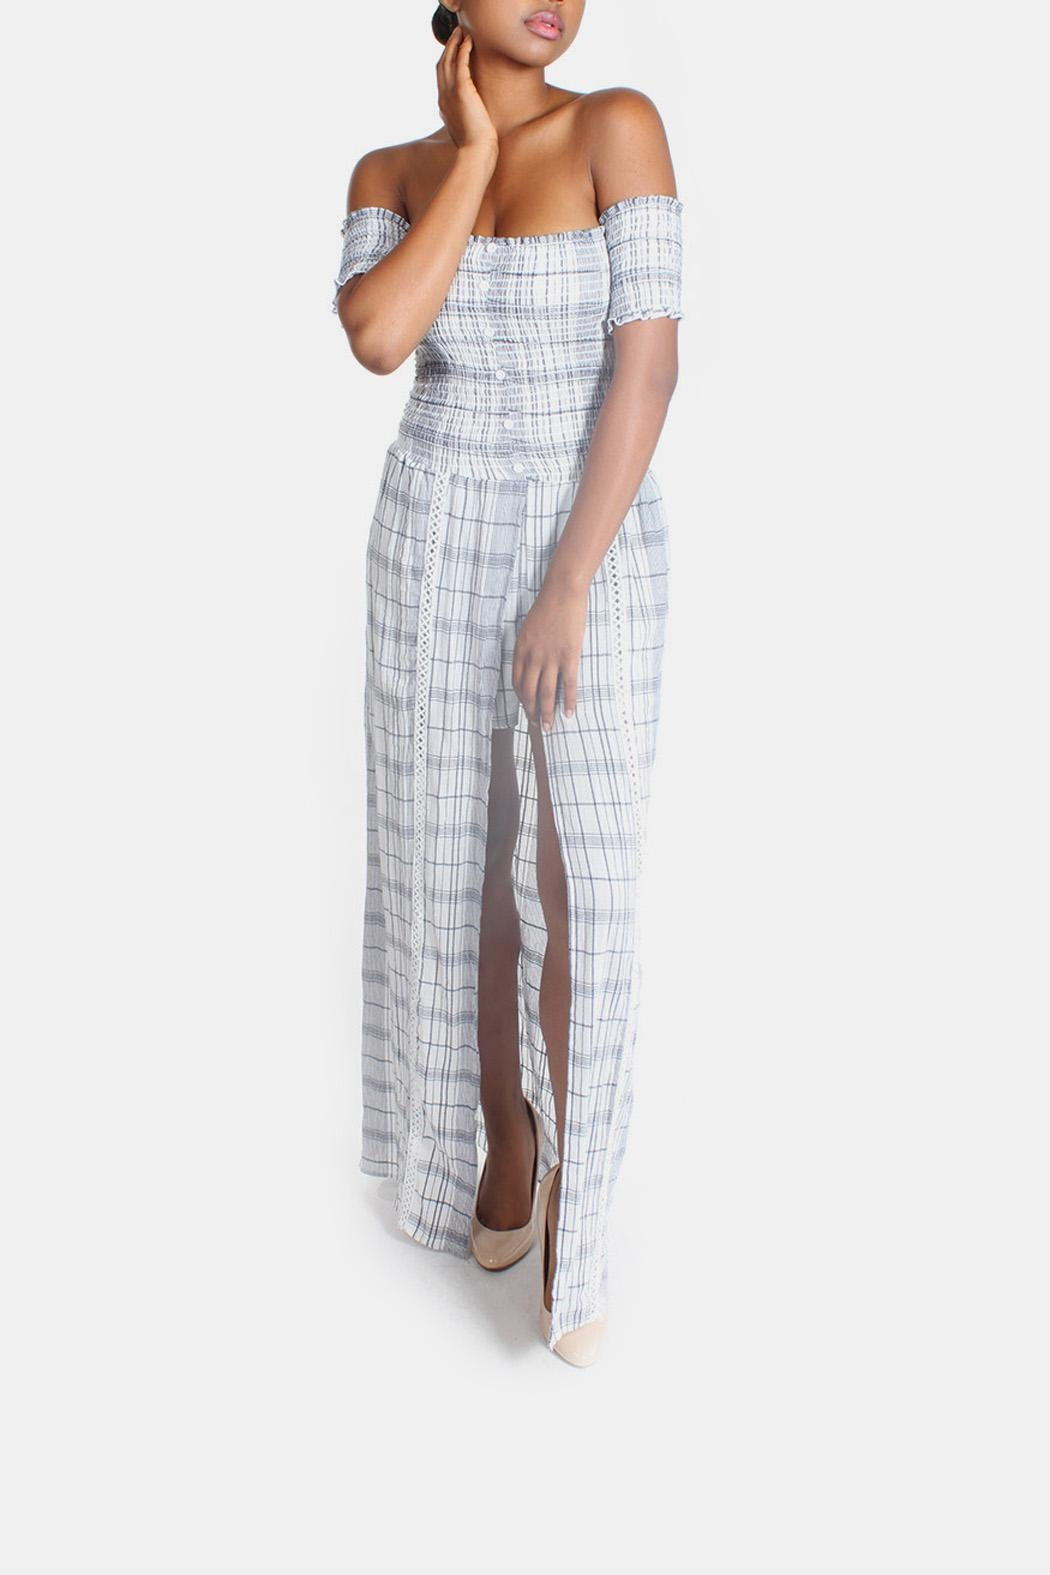 Sage Summer Plaid-Romper Maxi-Dress - Main Image